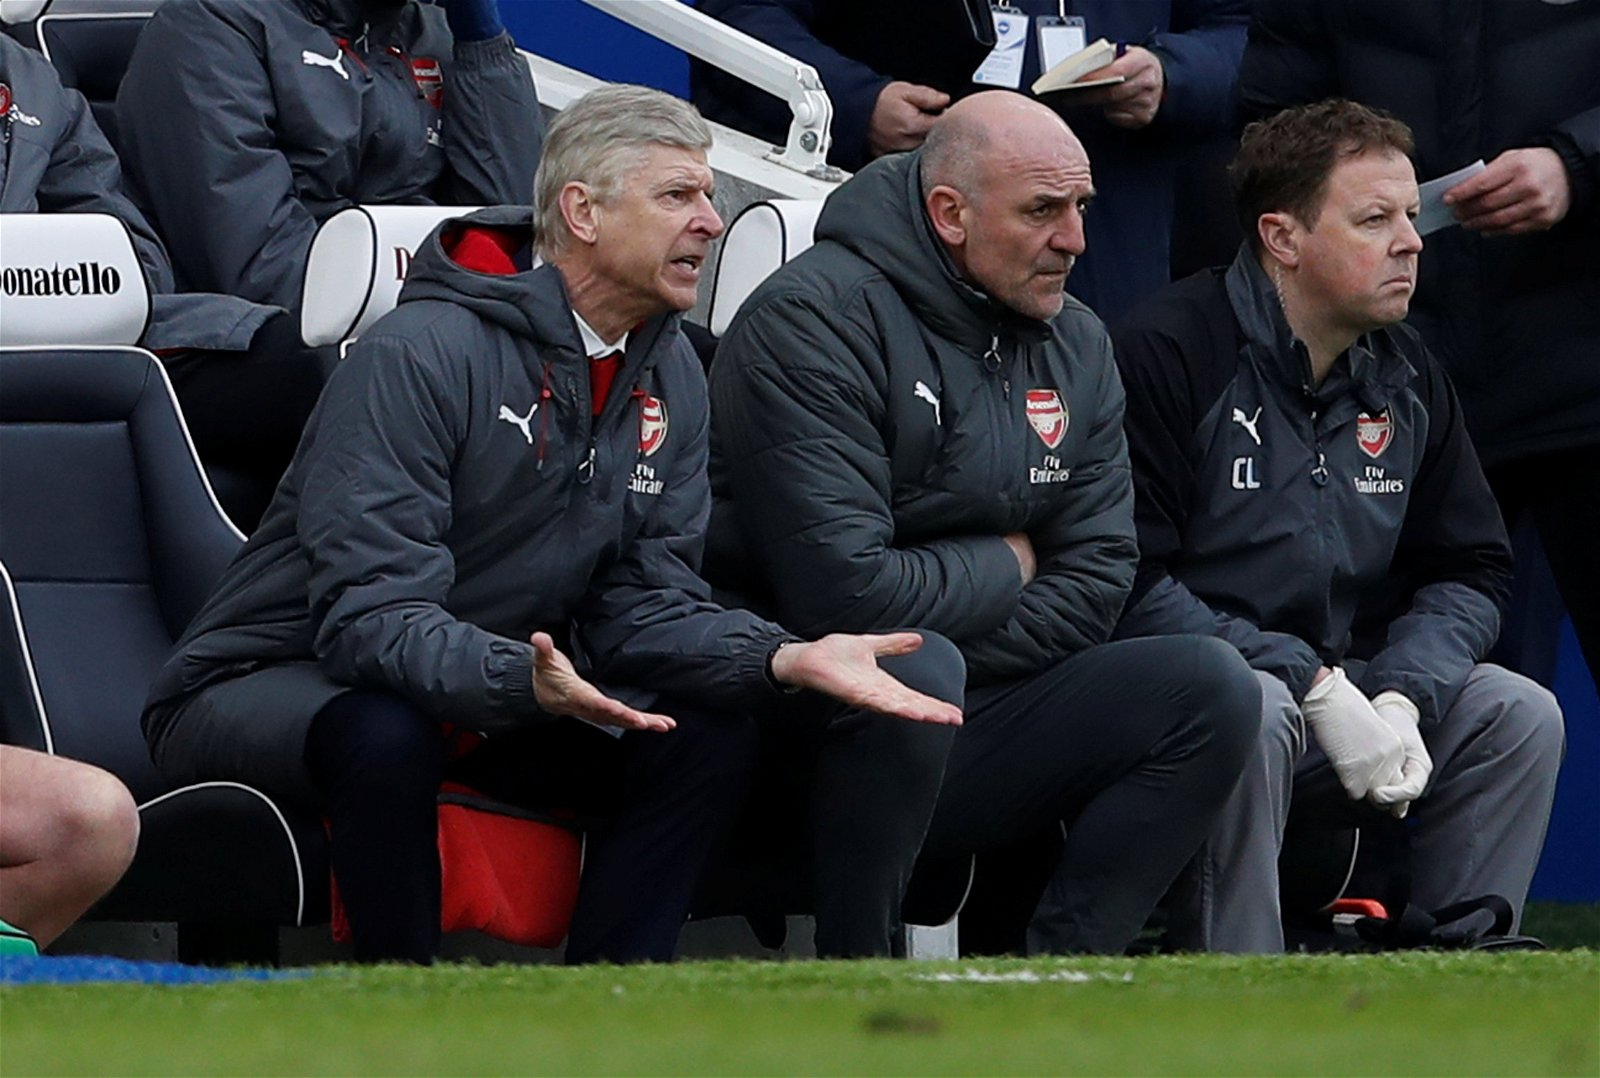 For all of Wenger's failings, Arsenal's players have been hiding behind him for far too long